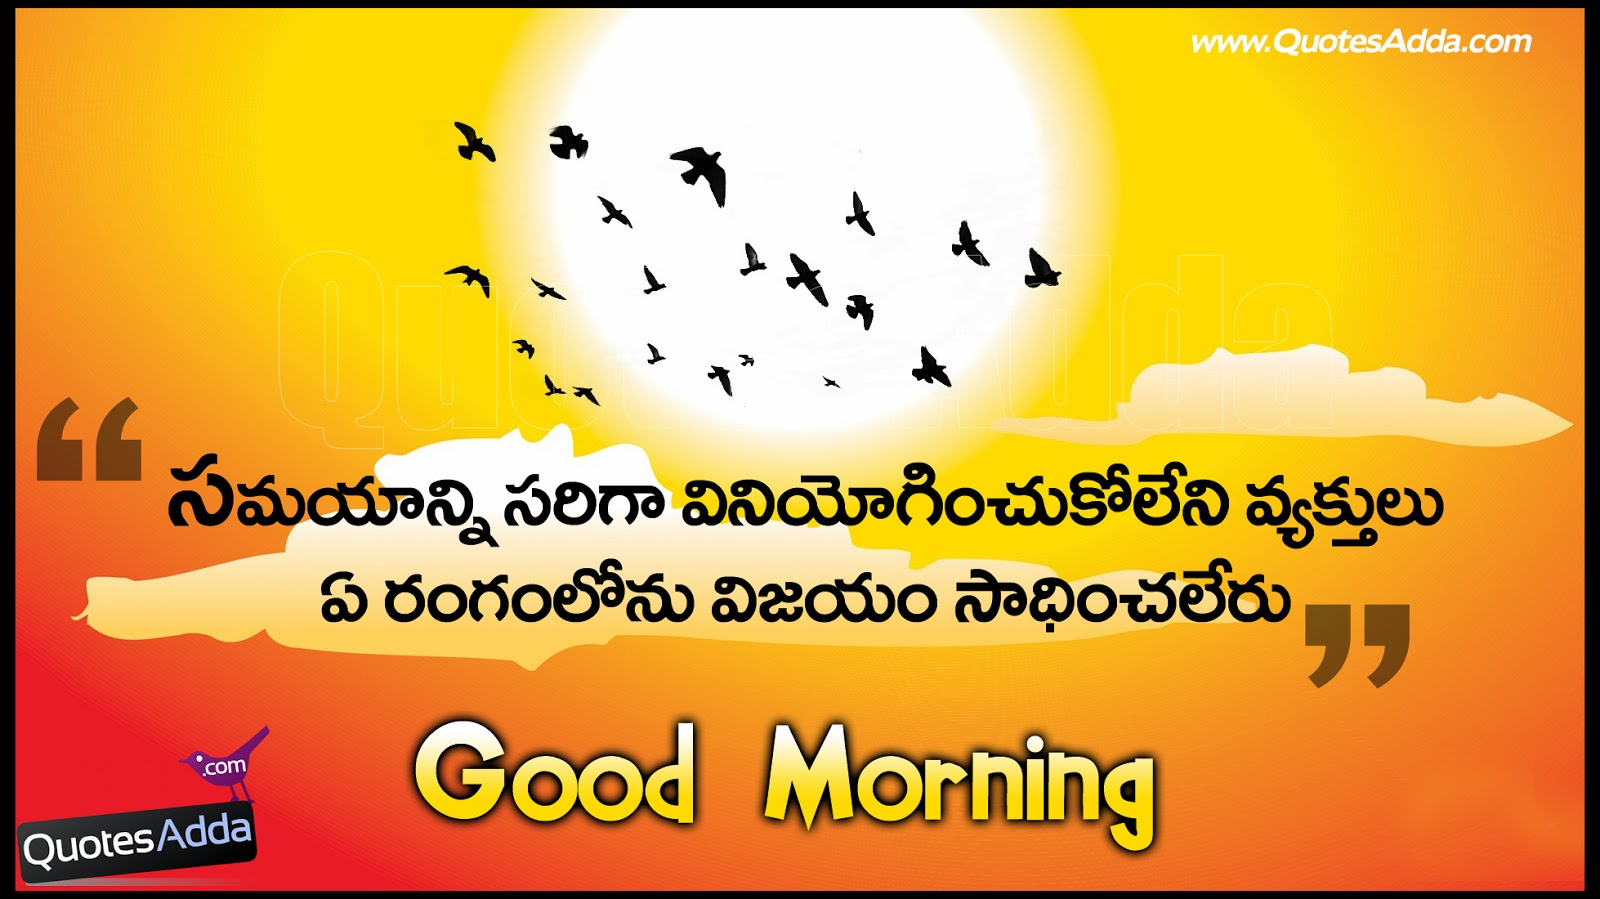 Good Morning Love Telugu : Good morning quotes in telugu with thoughts